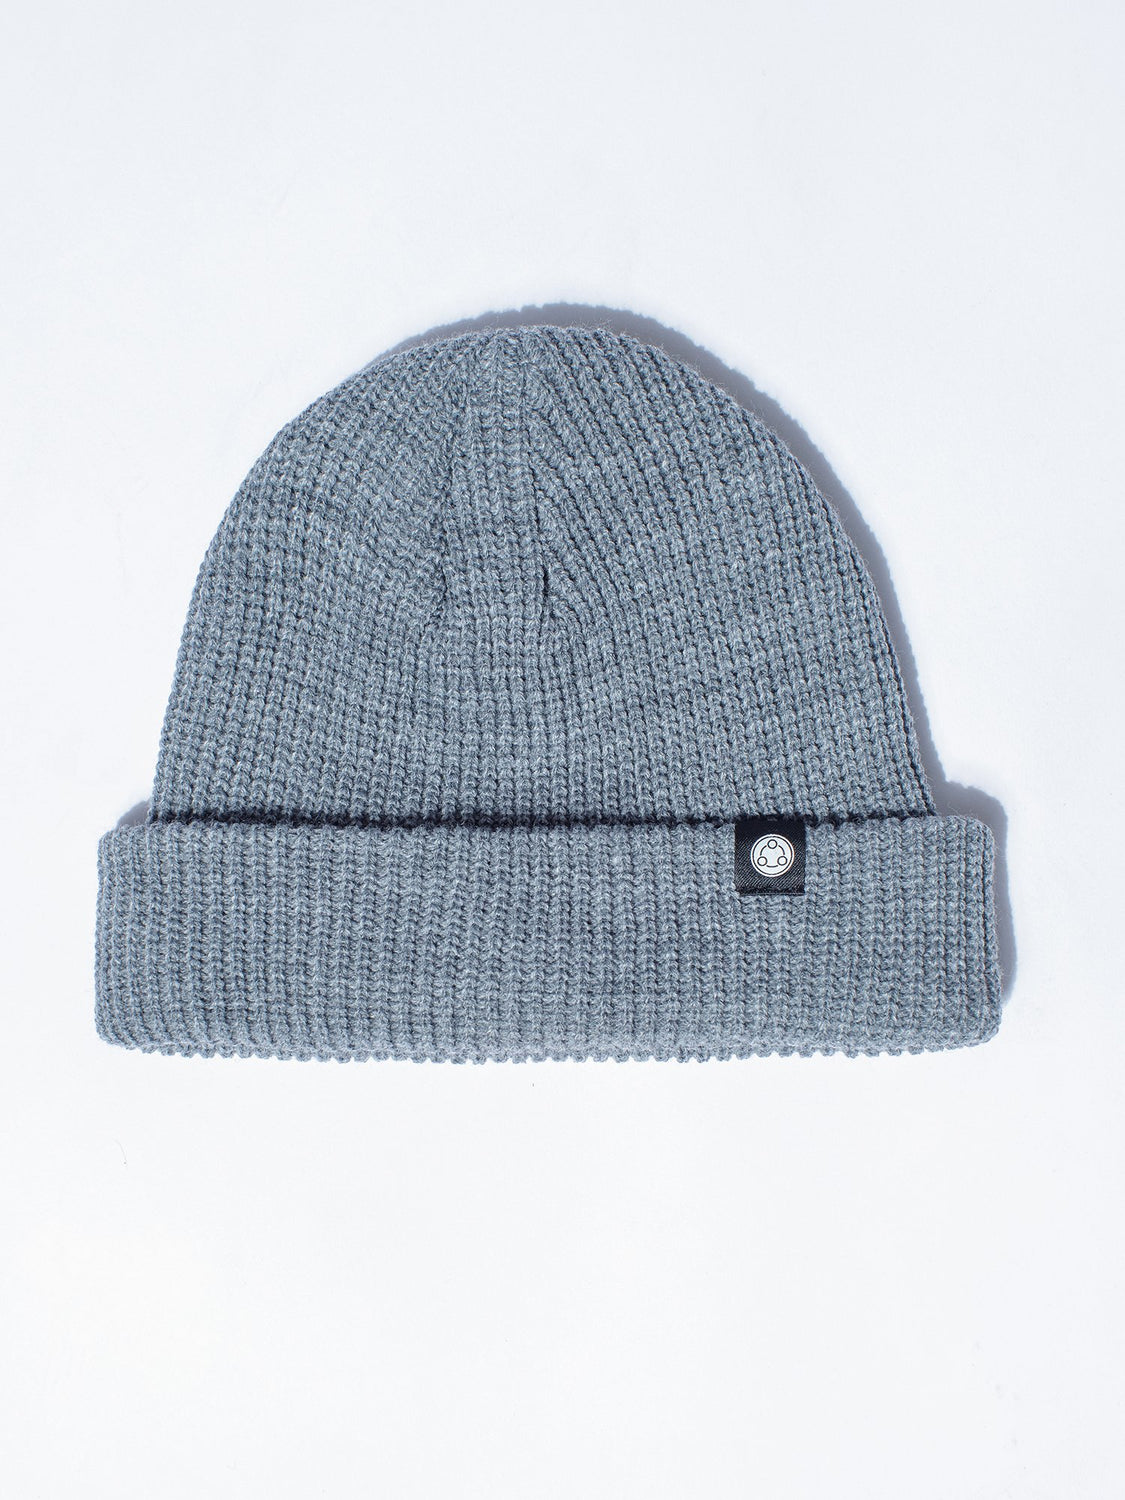 BROOKLYN BEANIE, GREY